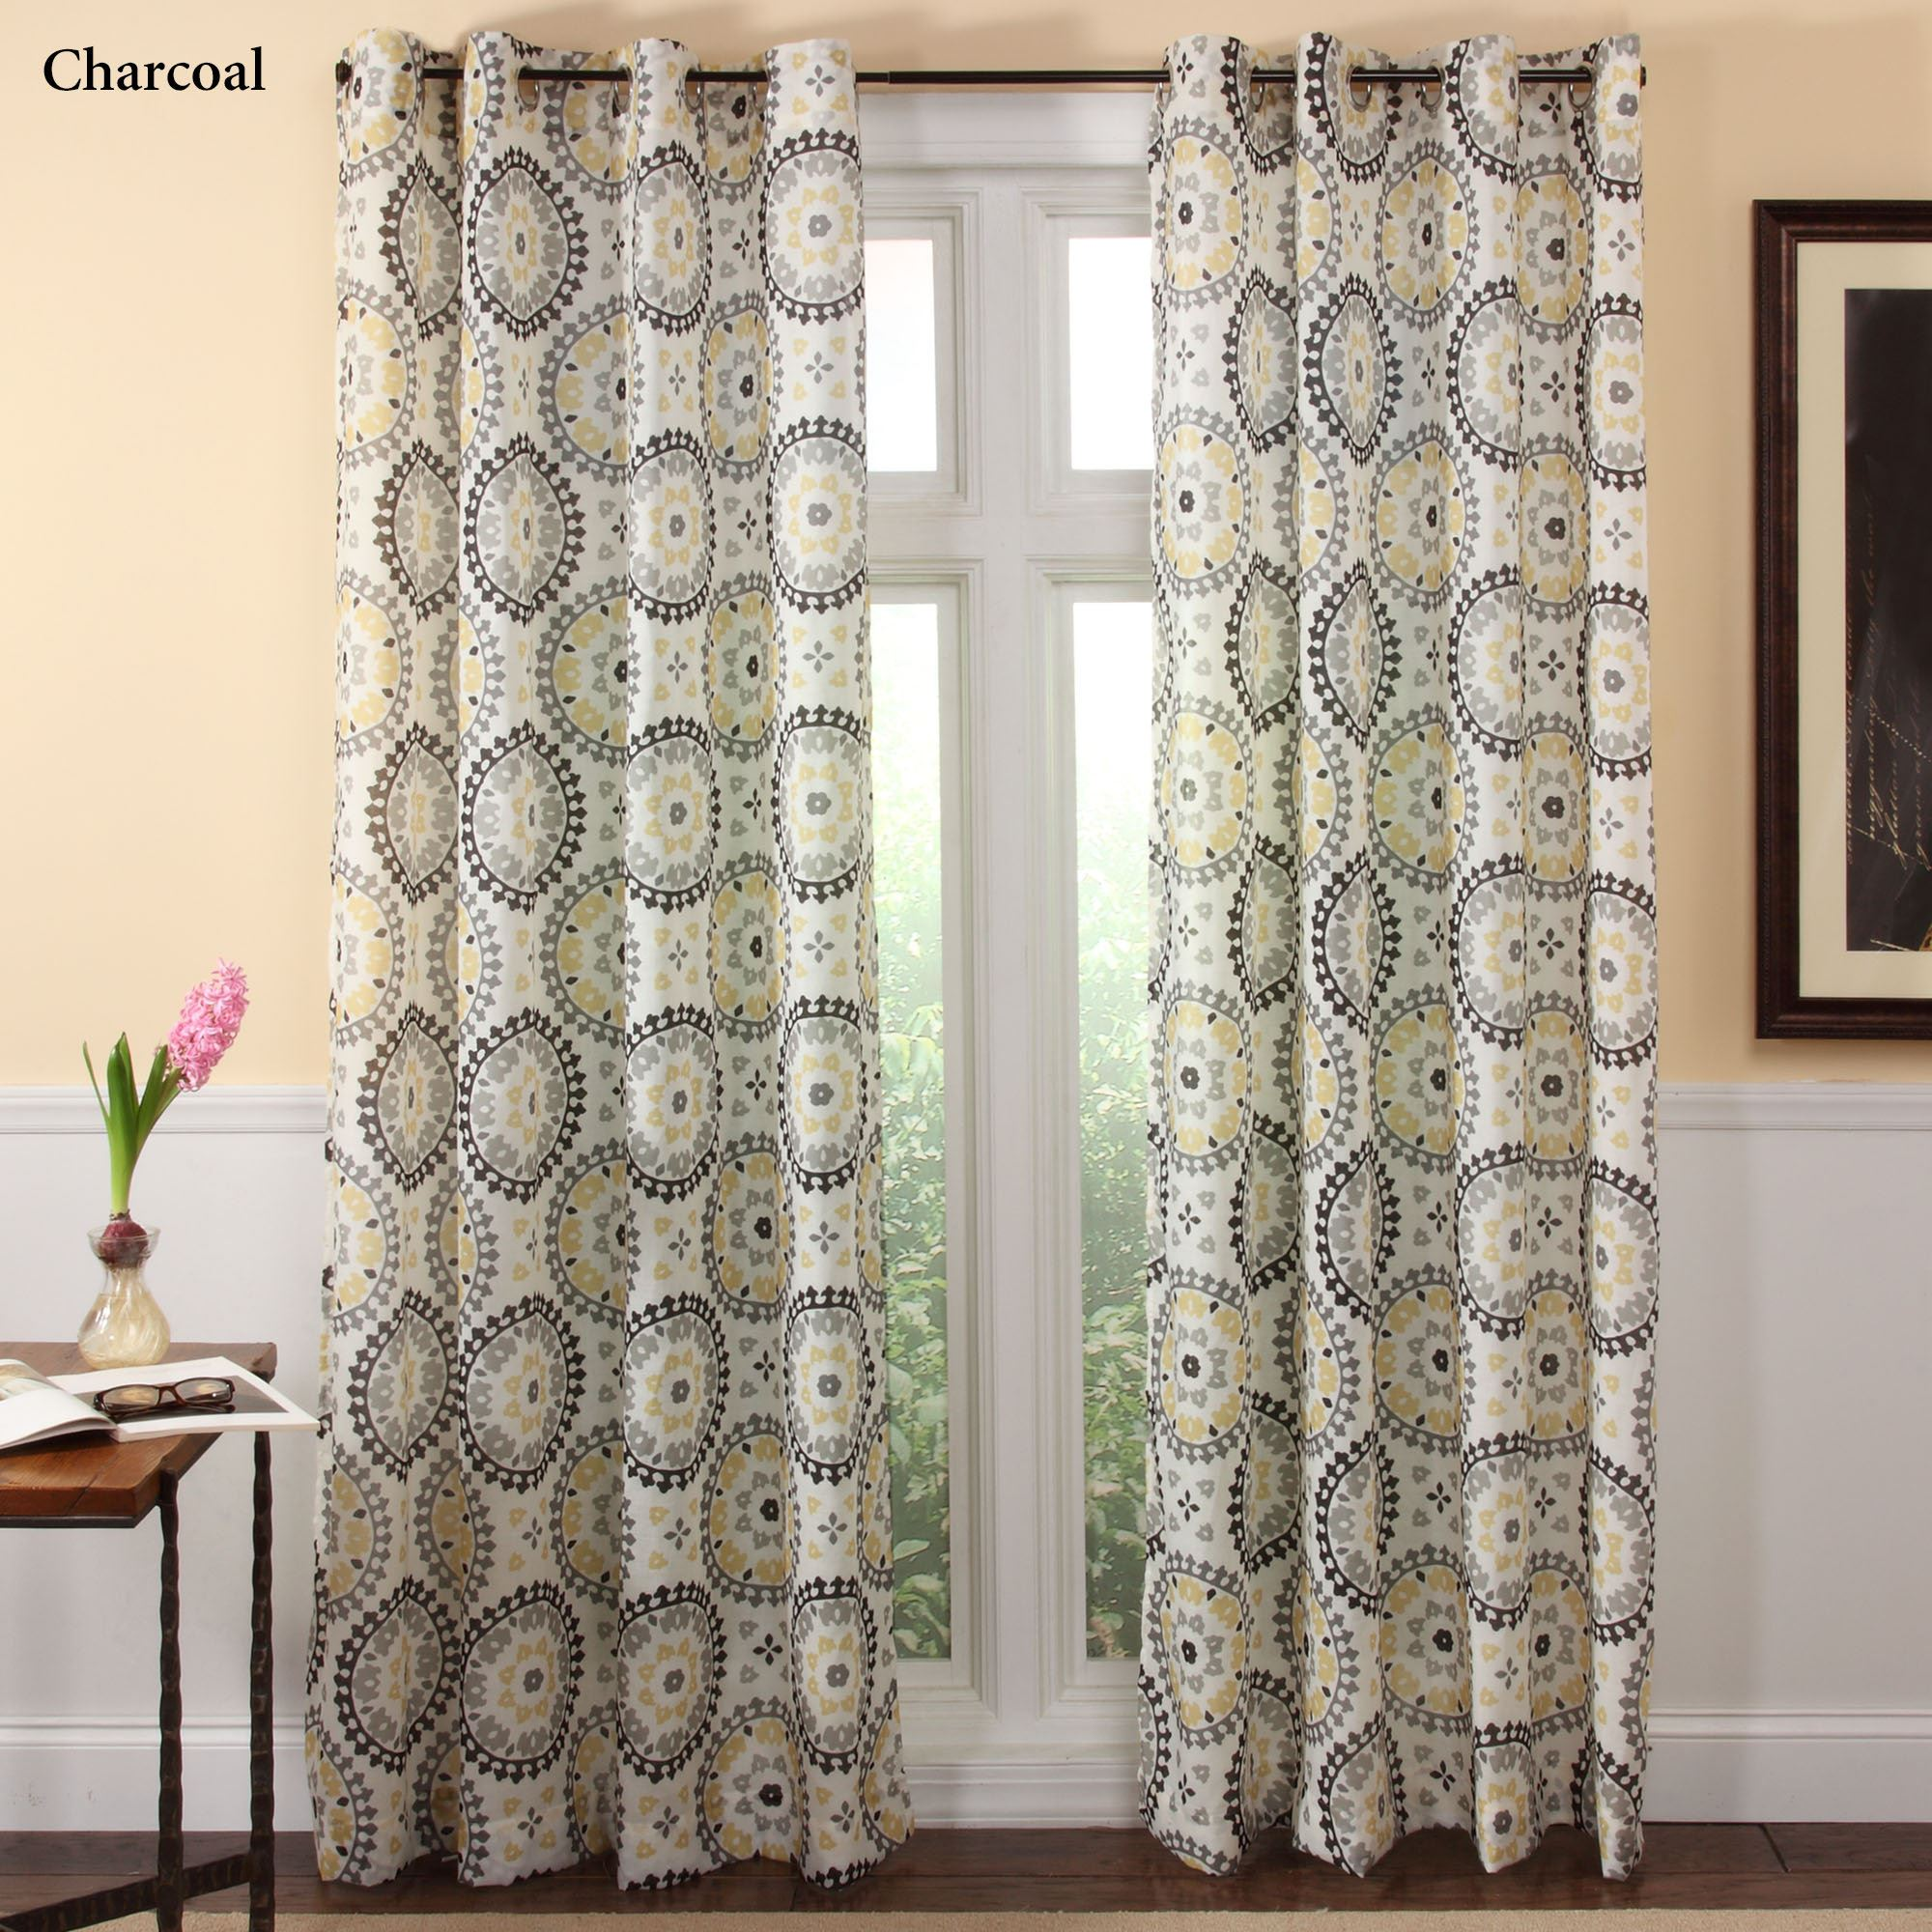 for hi legacy res choosing euro basic panel living make in small with room double wide pleat curtains window panels how curtain parchment interior stunning to